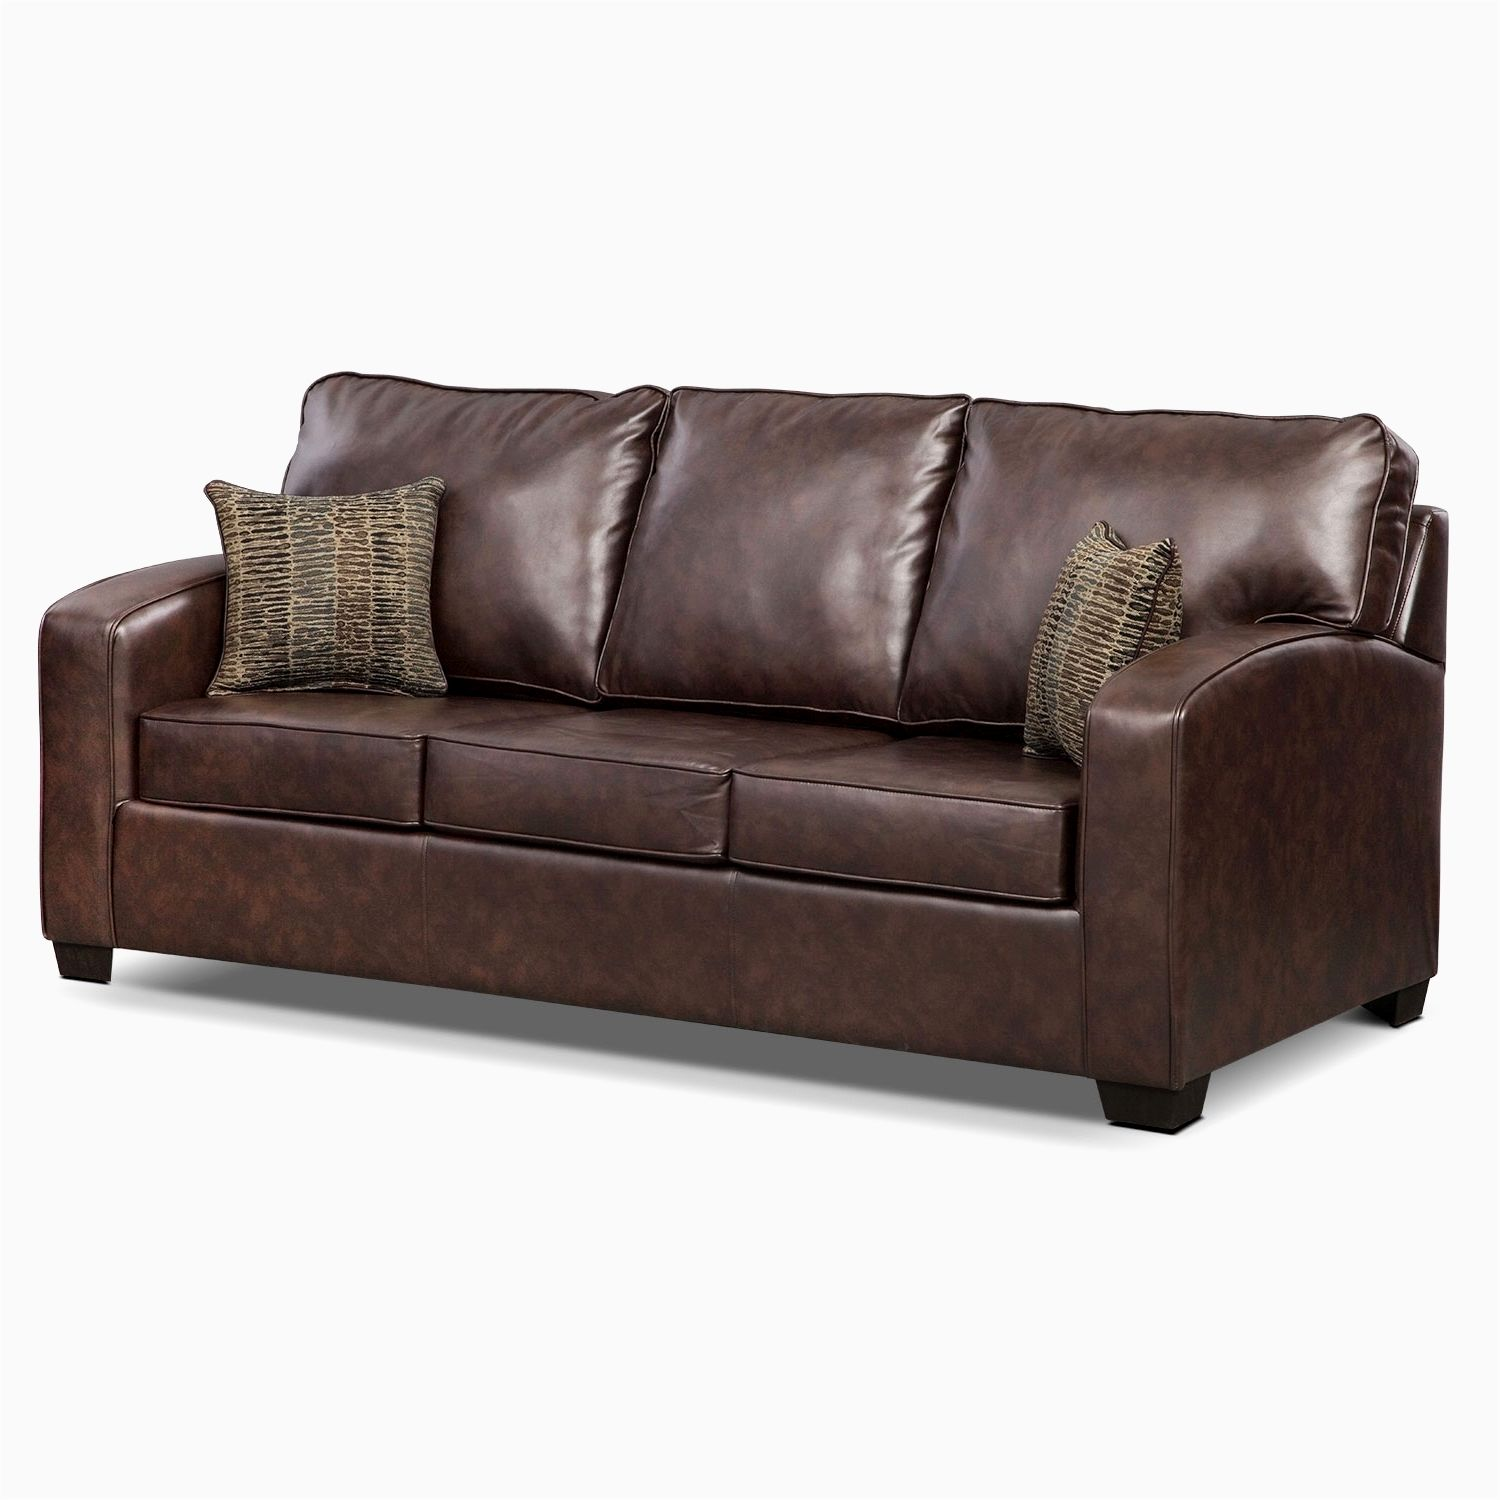 beautiful sectional sofa with sleeper photograph-Modern Sectional sofa with Sleeper Concept